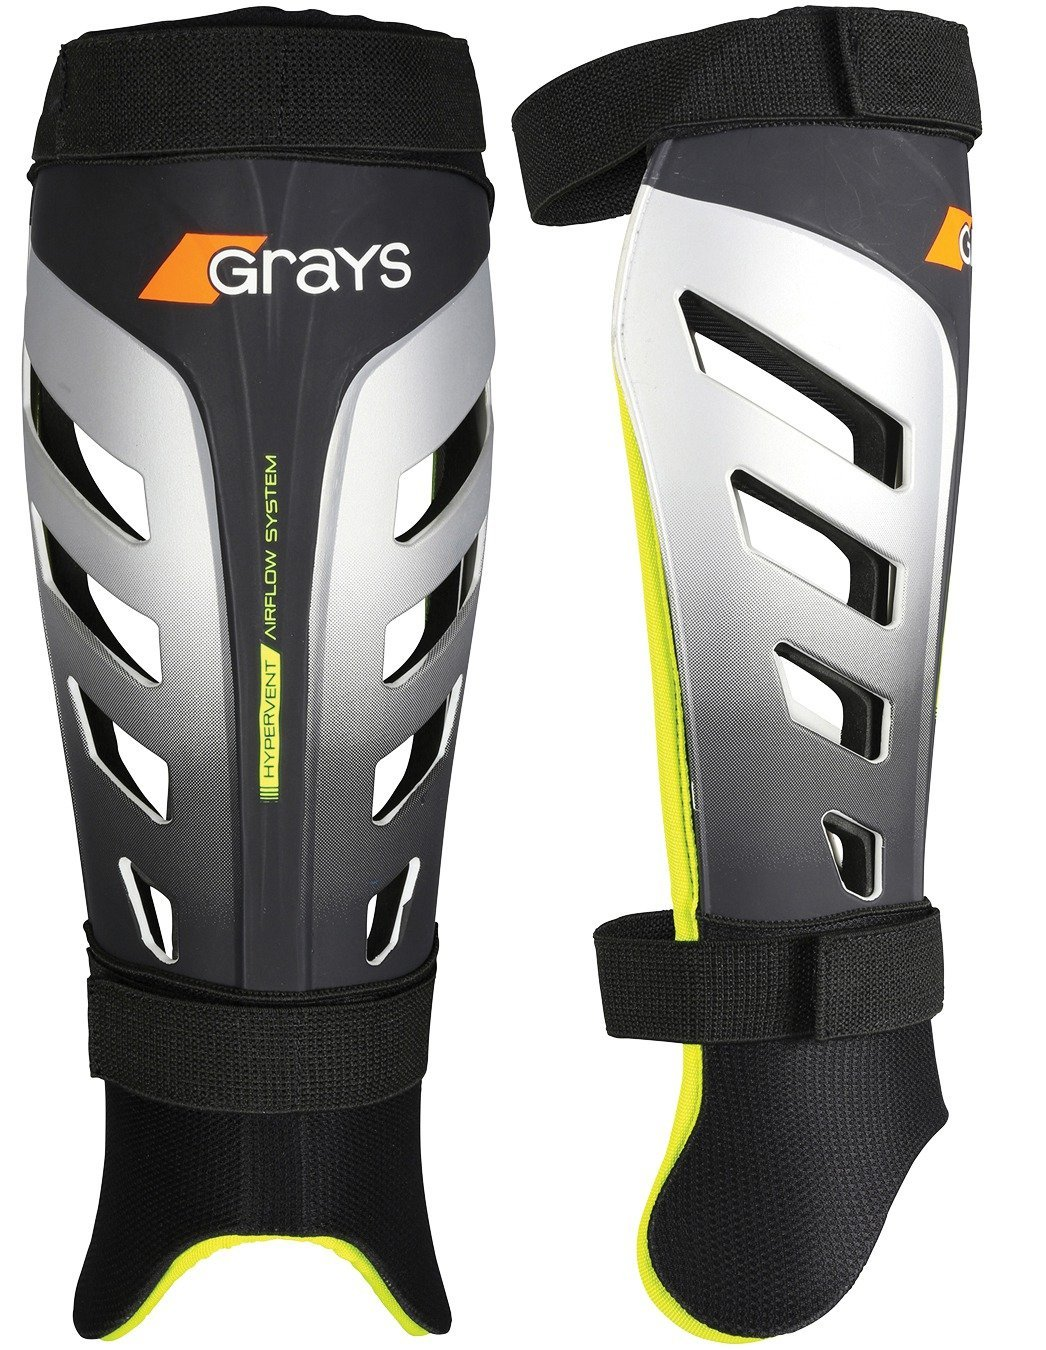 Cheap Hockey Shinguards Find Hockey Shinguards Deals On Line At